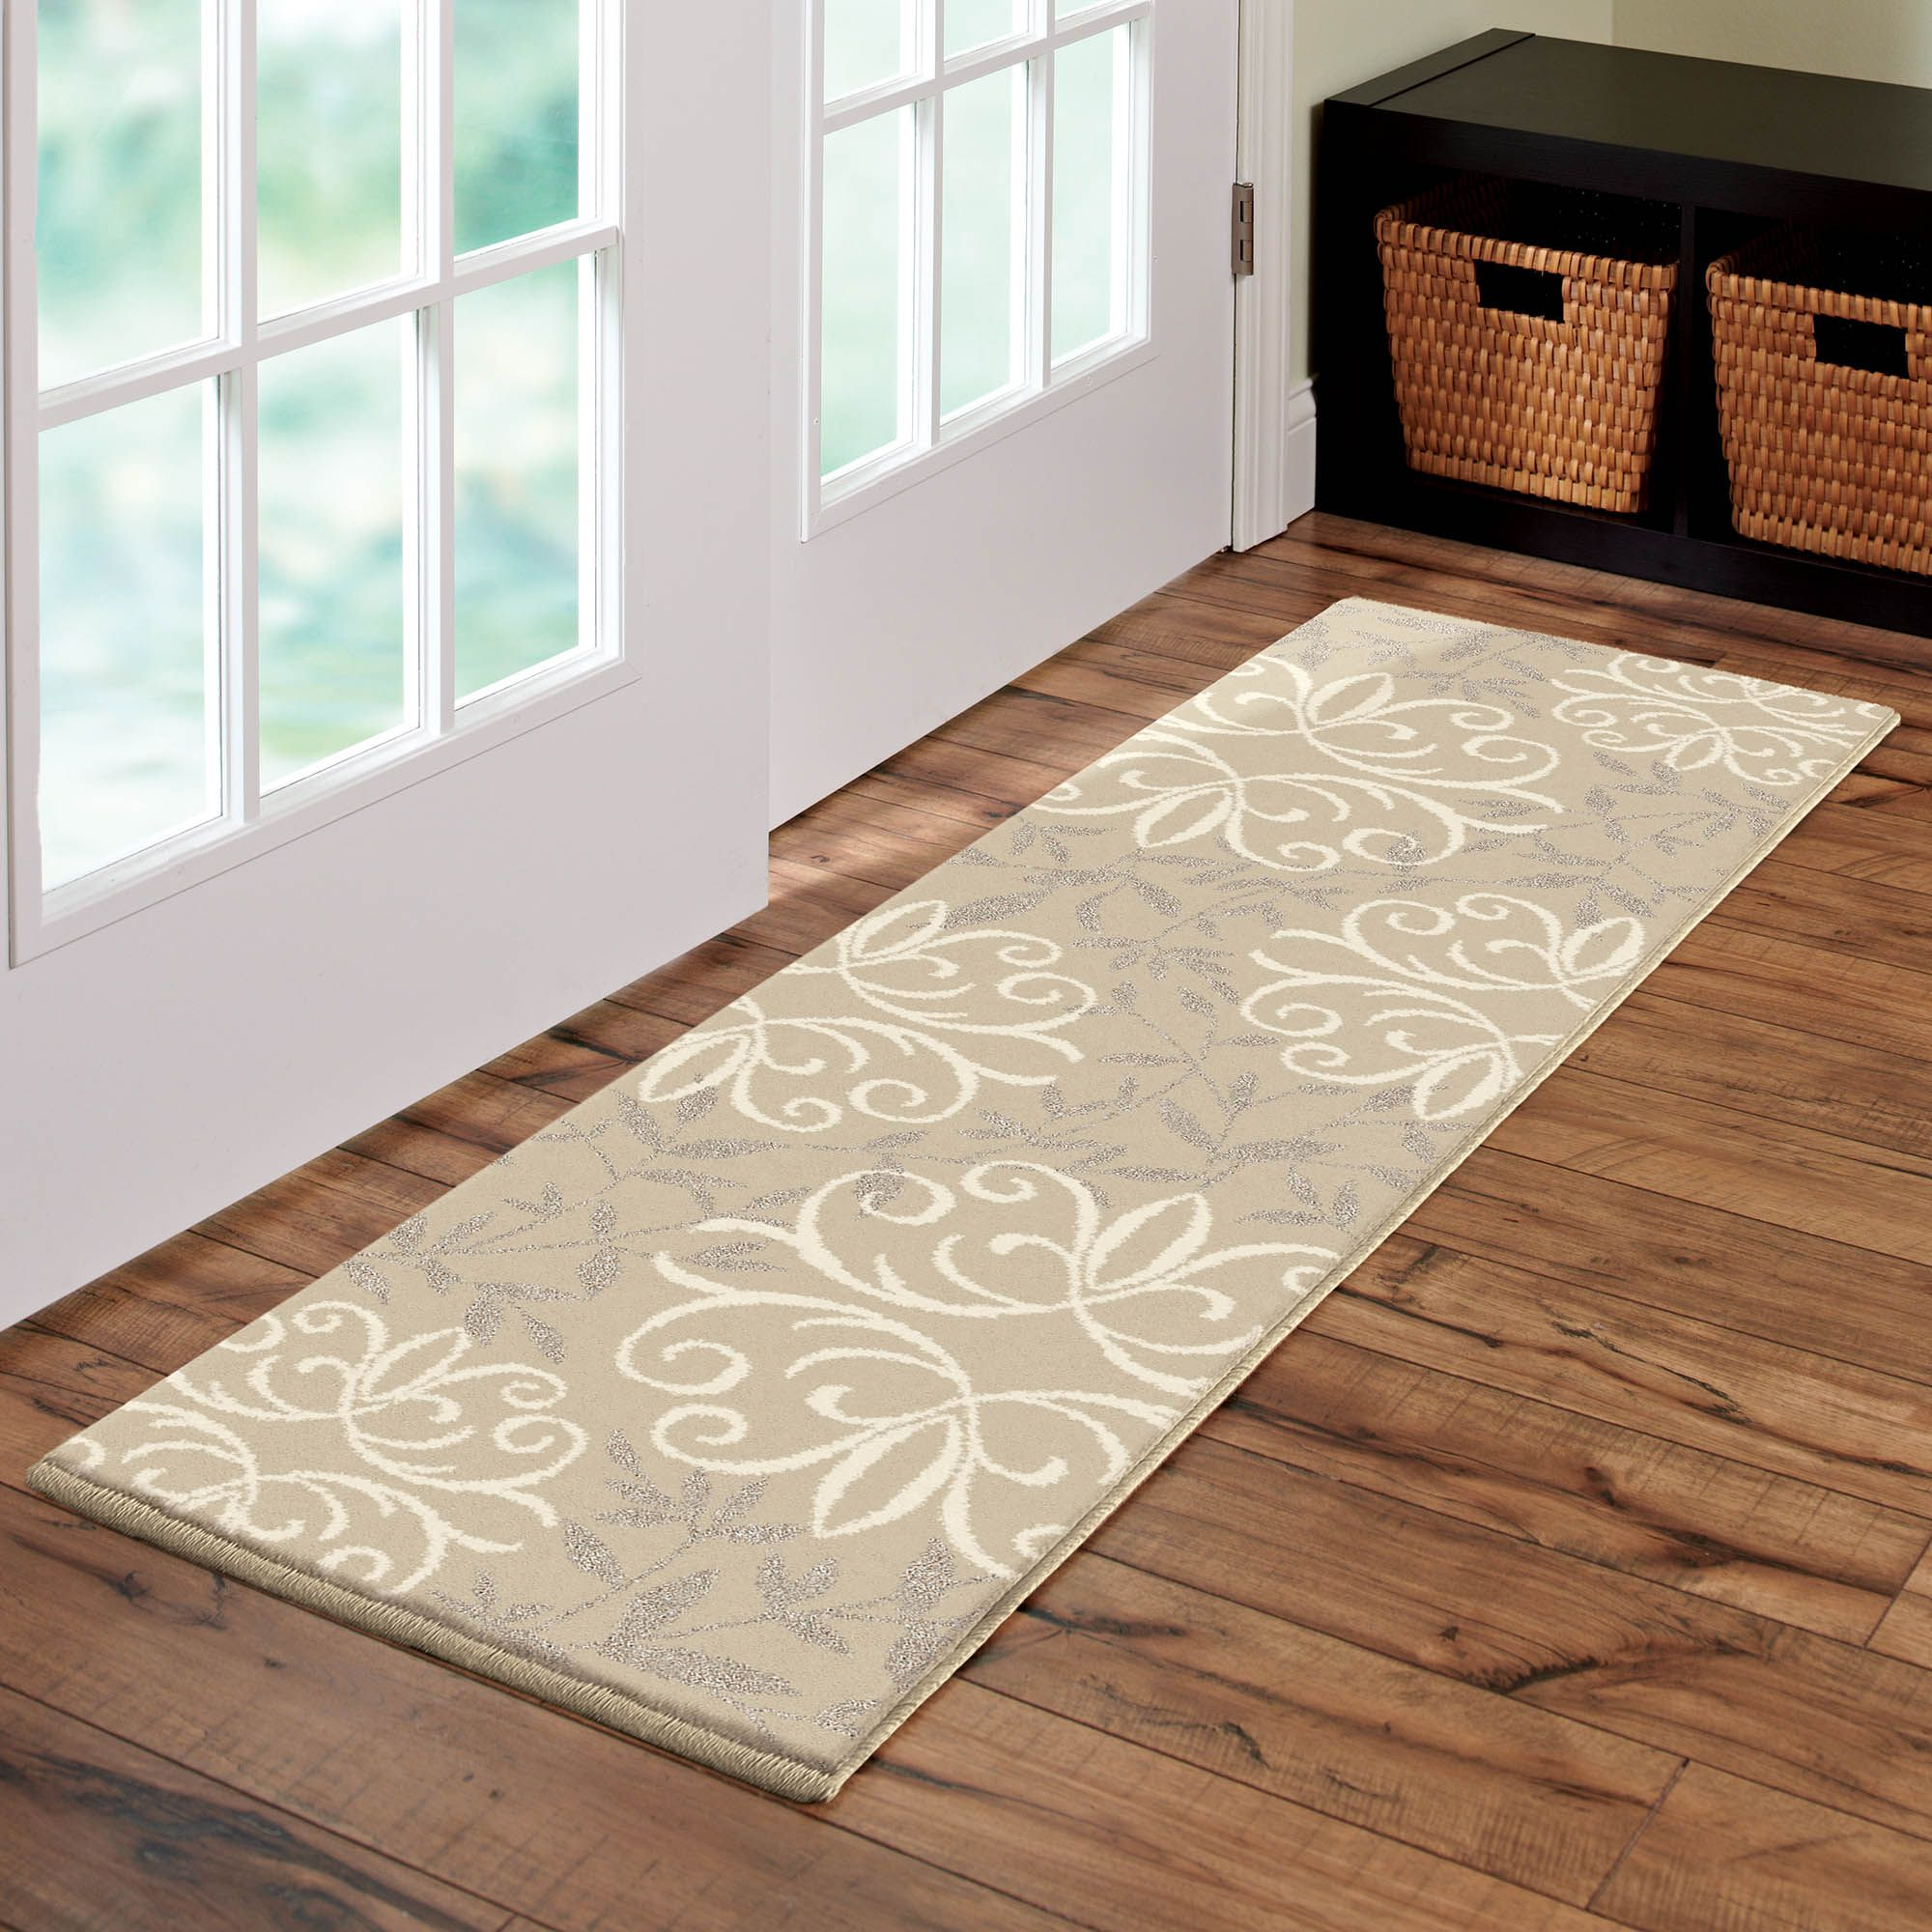 Home Area Rugs Better Homes And Gardens Home And Garden